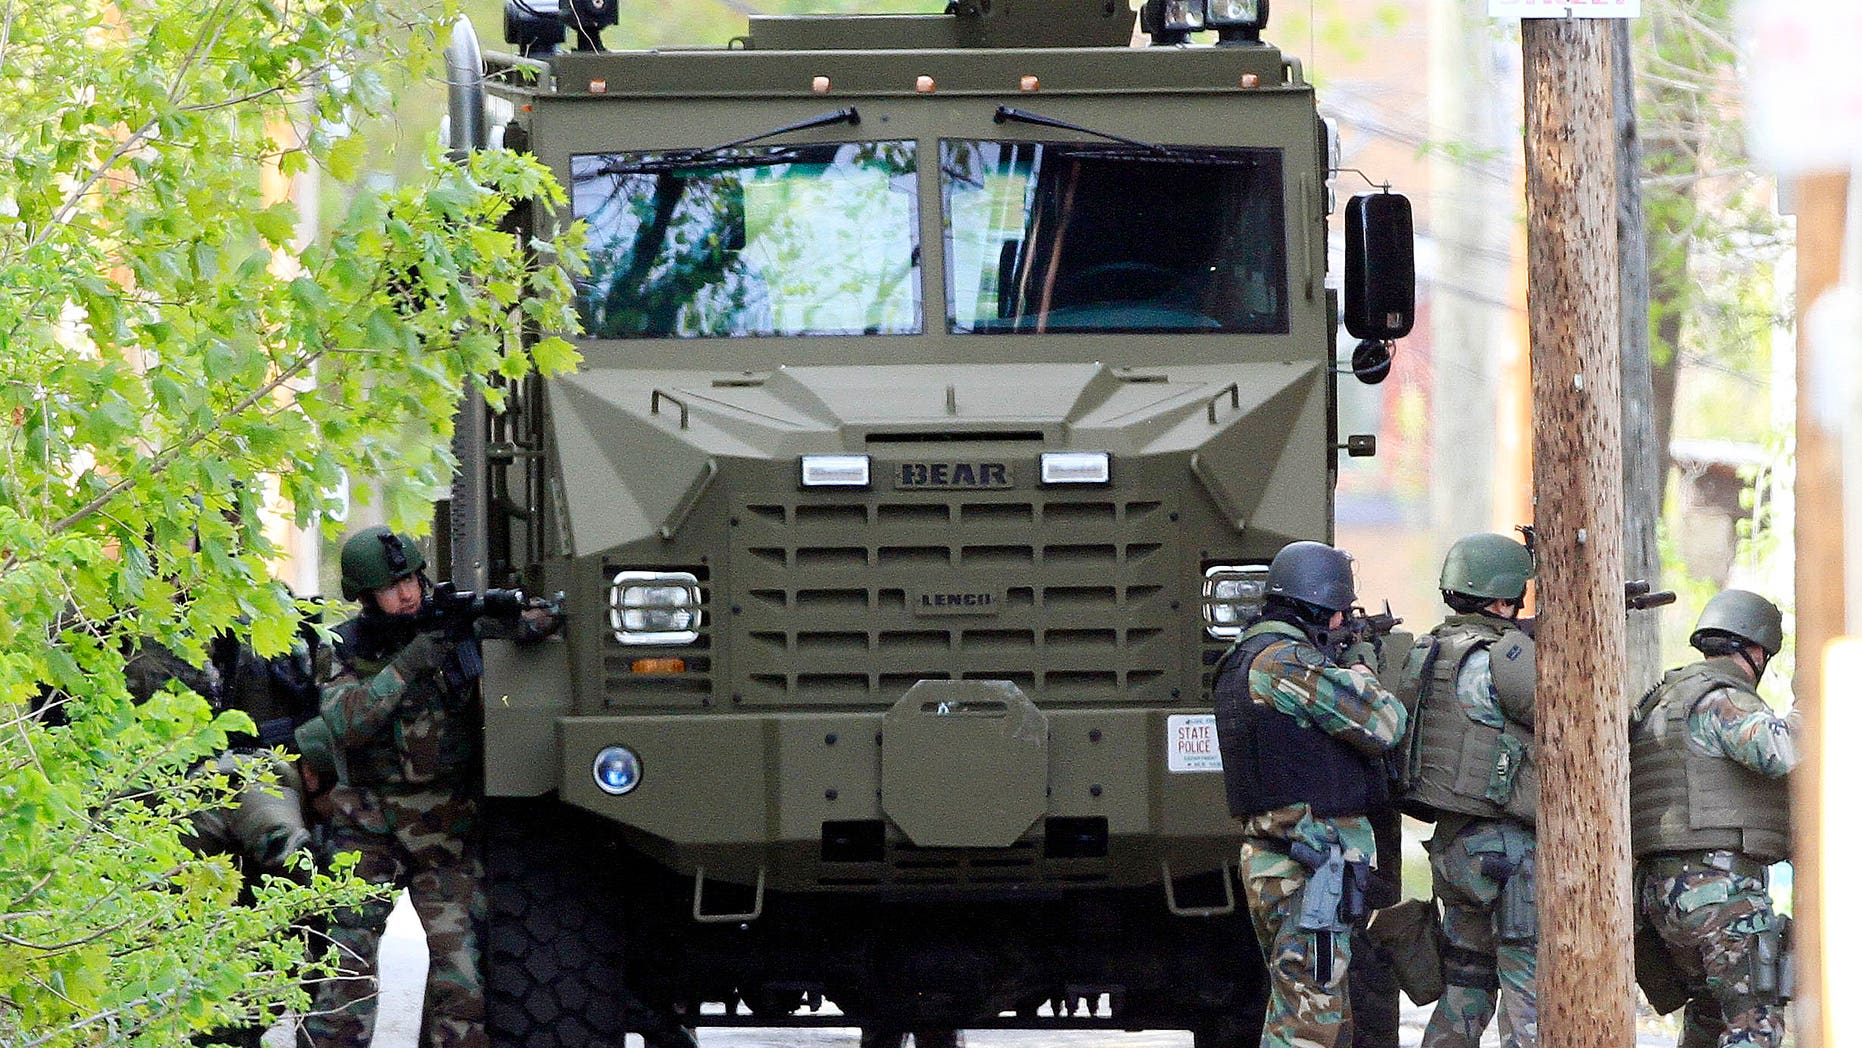 May 6: The state police SWAT team had guns drawn during a police standoff with an armed man in Manchester, N.H. (AP)